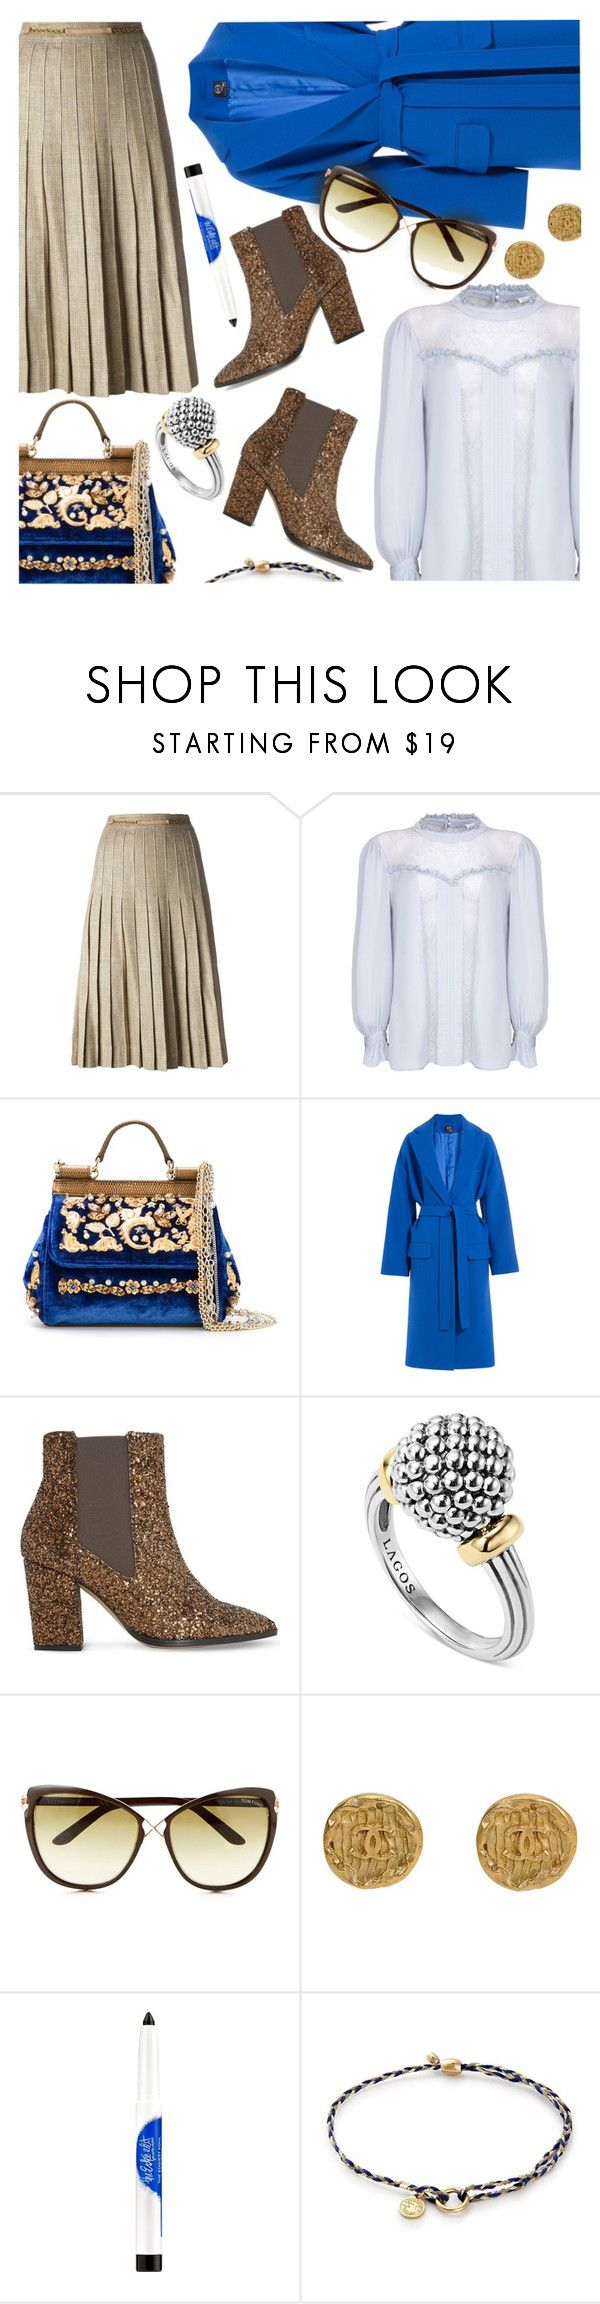 """""""Blue & Gold & Silver & Glitter"""" by stacey-lynne ❤ liked on Polyvore featuring CÉLINE, Ghost, Dolce&Gabbana, Alexander McQueen, Dune, Lagos, Tom Ford, Estée Lauder and Alex and Ani"""